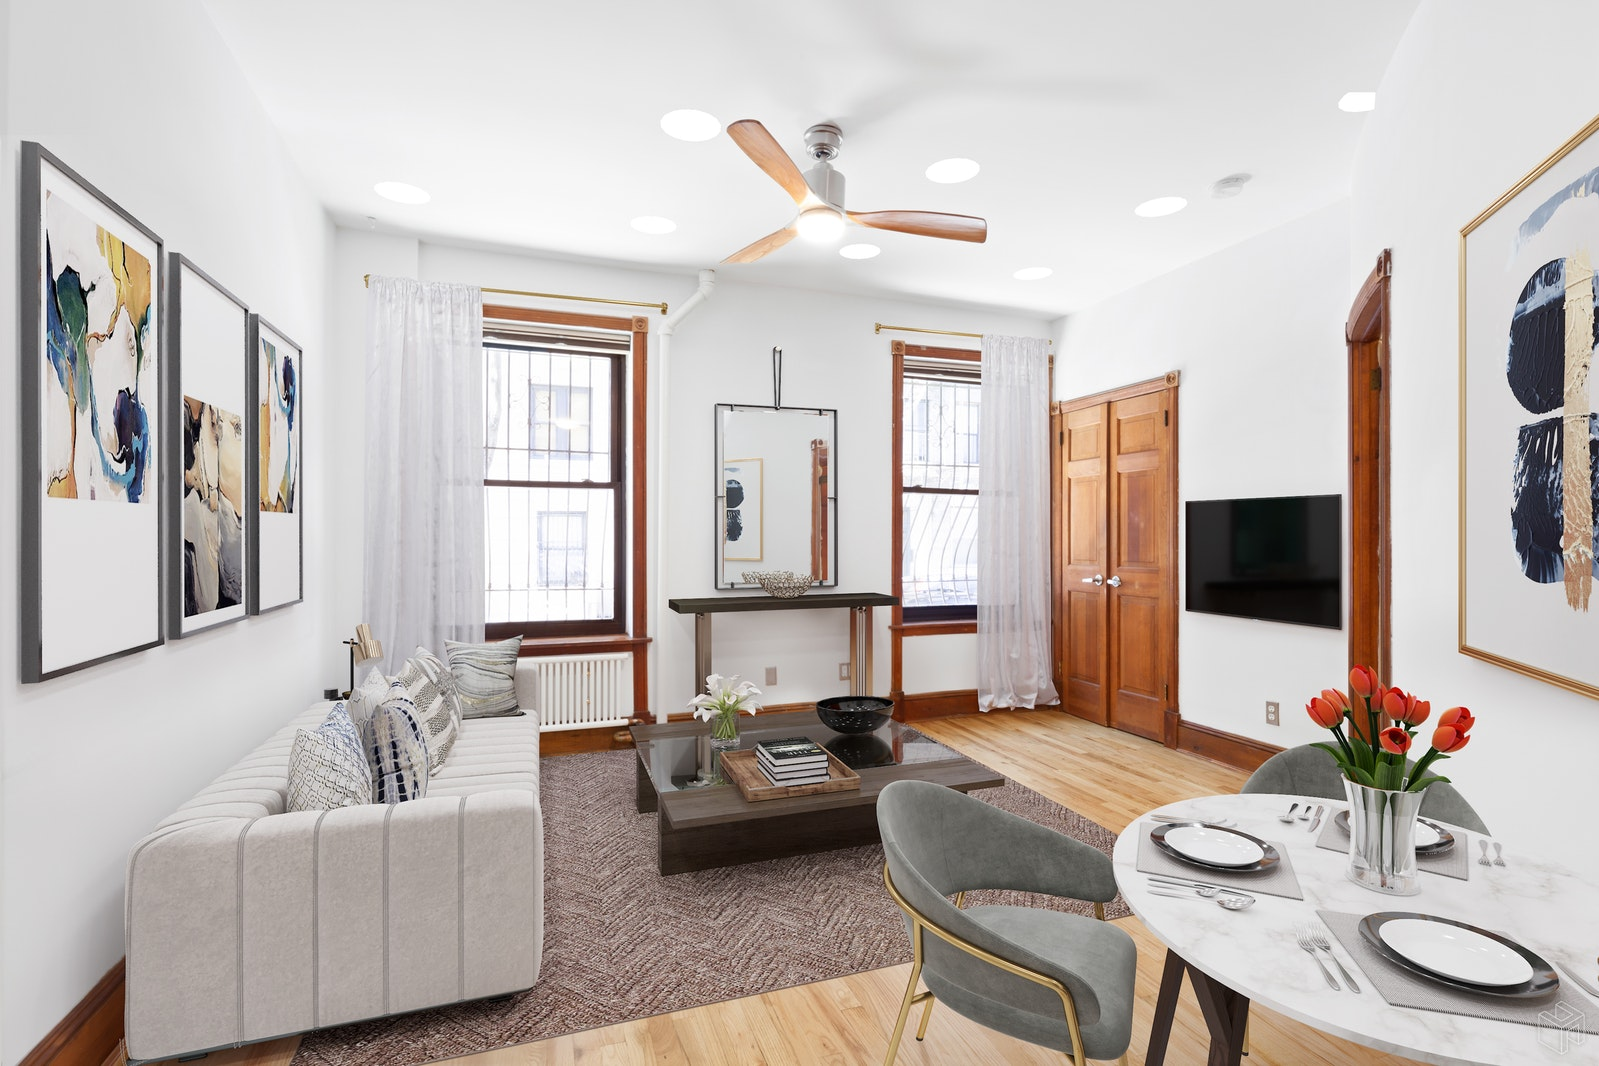 251 Pacific Street 2, Boerum Hill, Brooklyn, NY, 11201, $470,000, Sold Property, Halstead Real Estate, Photo 1